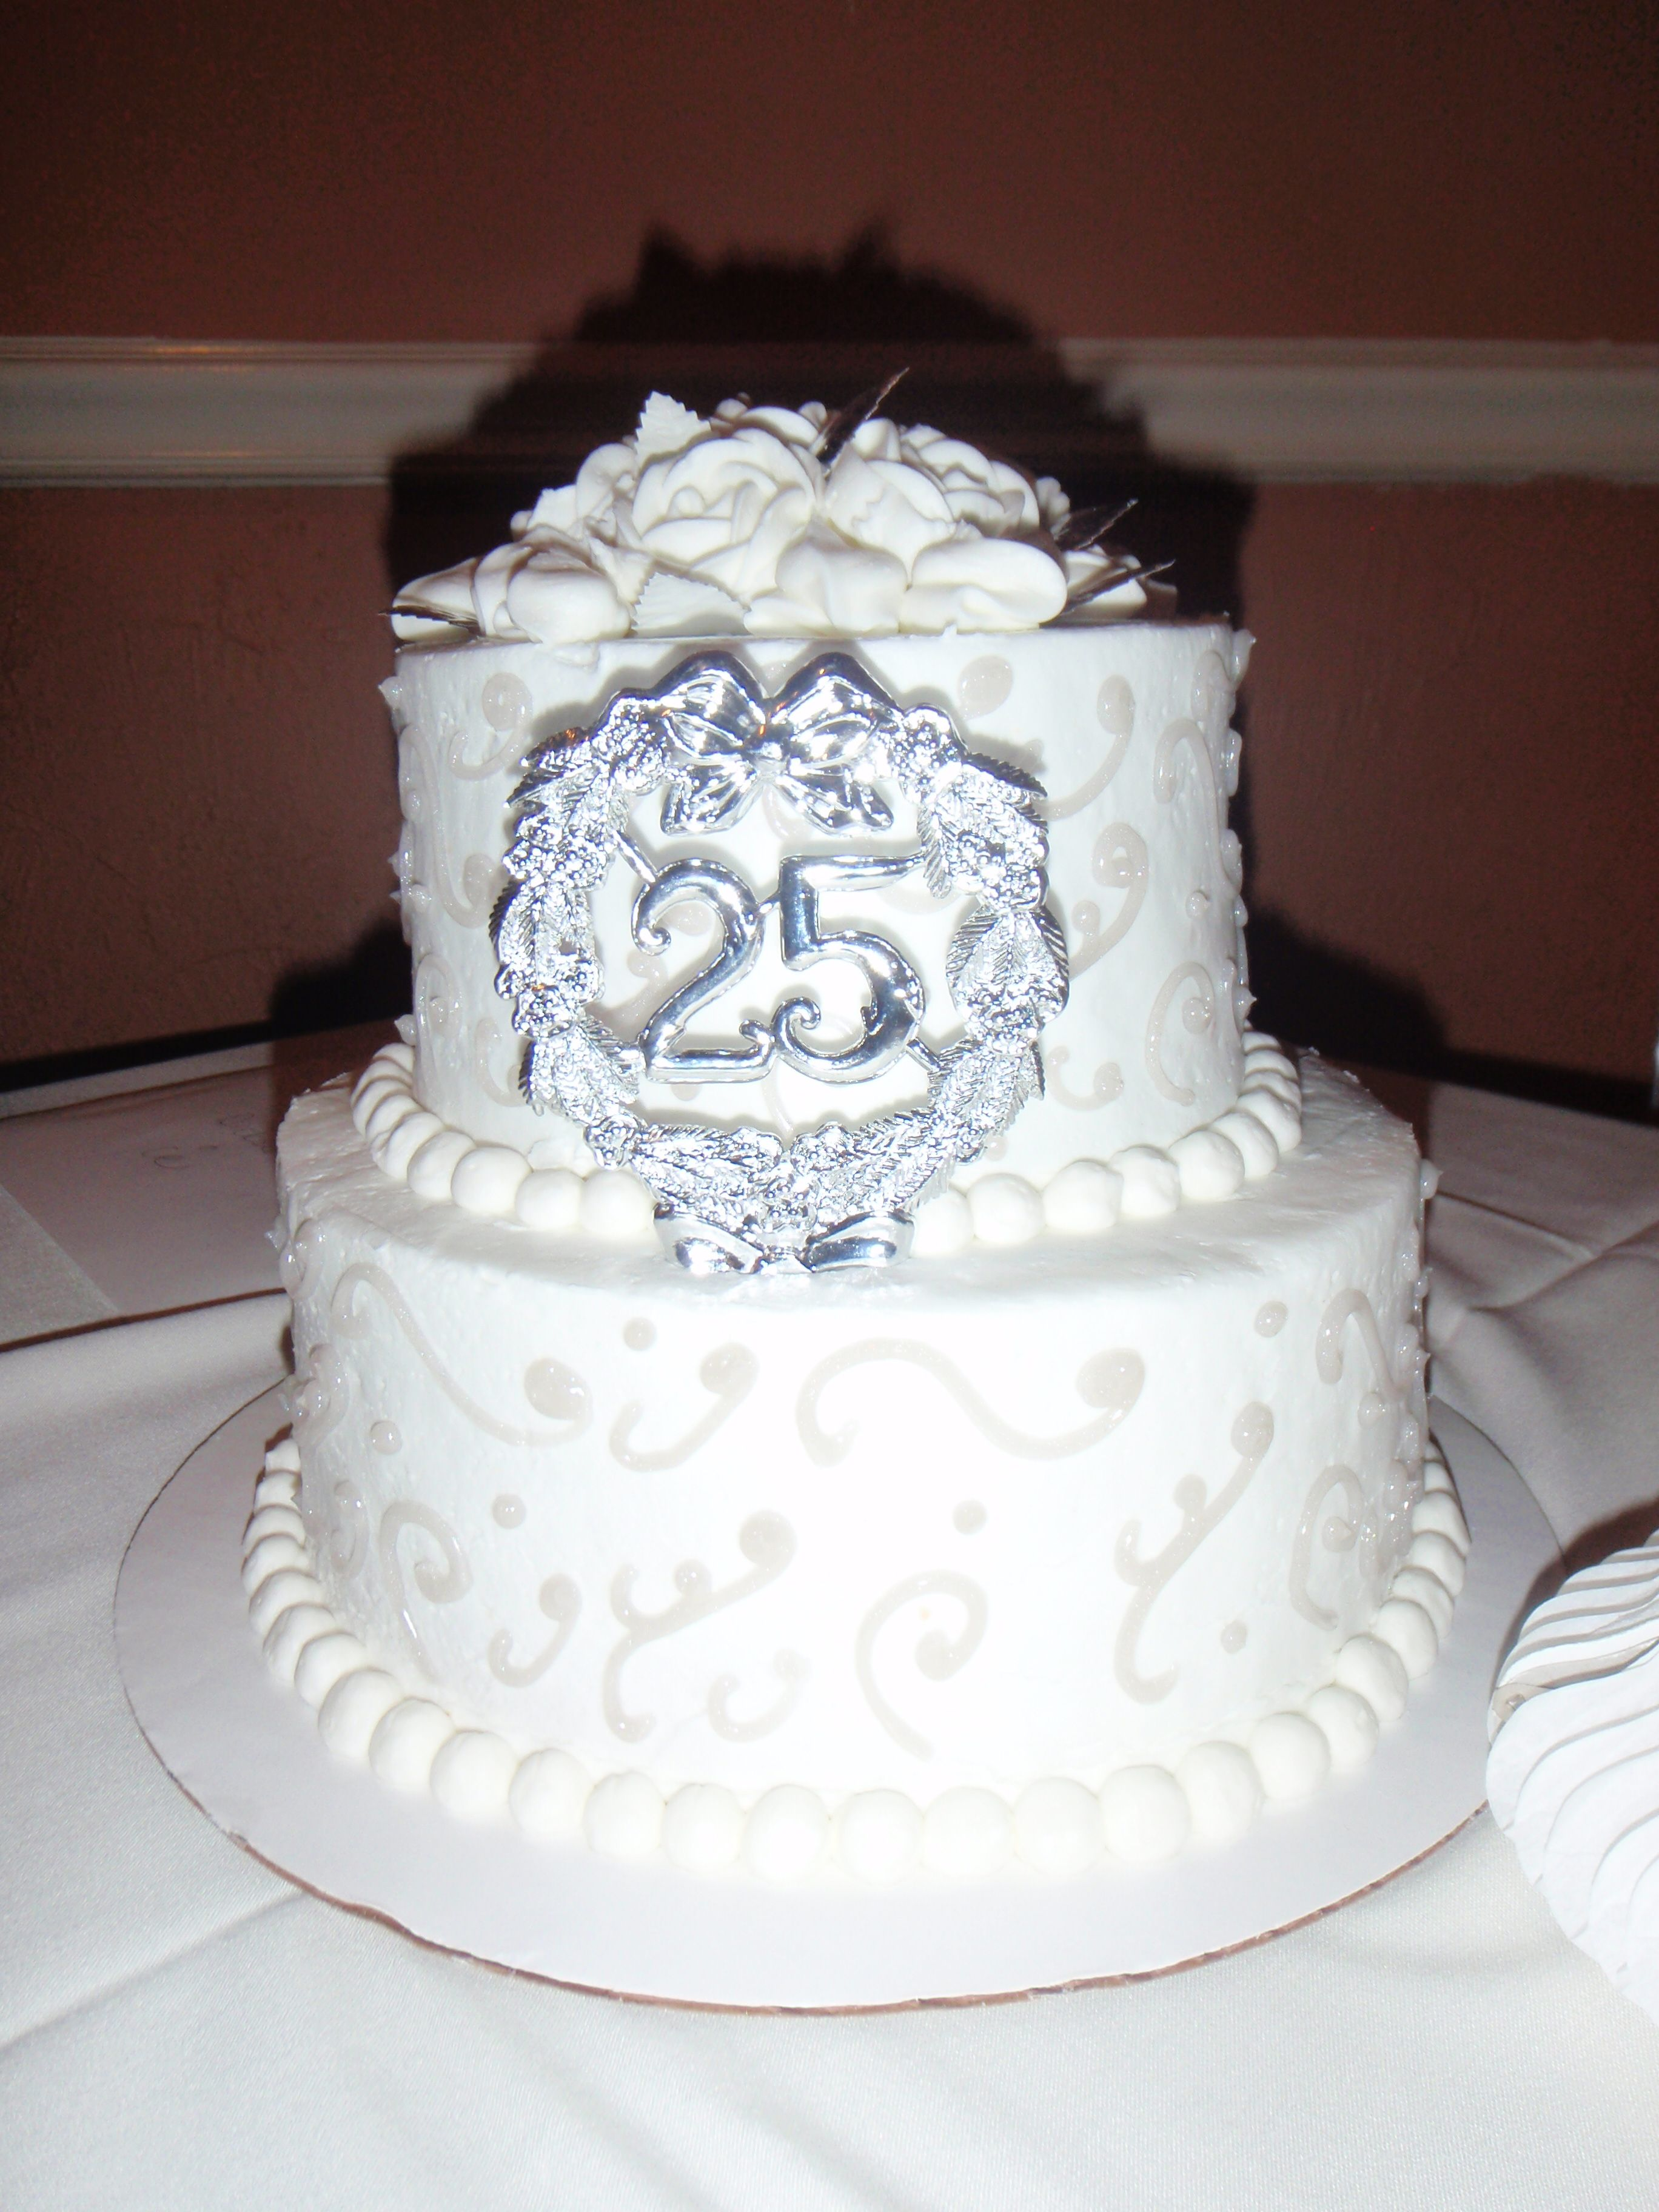 anniversary cakes | 25th wedding anniversary cakes | Reference ...